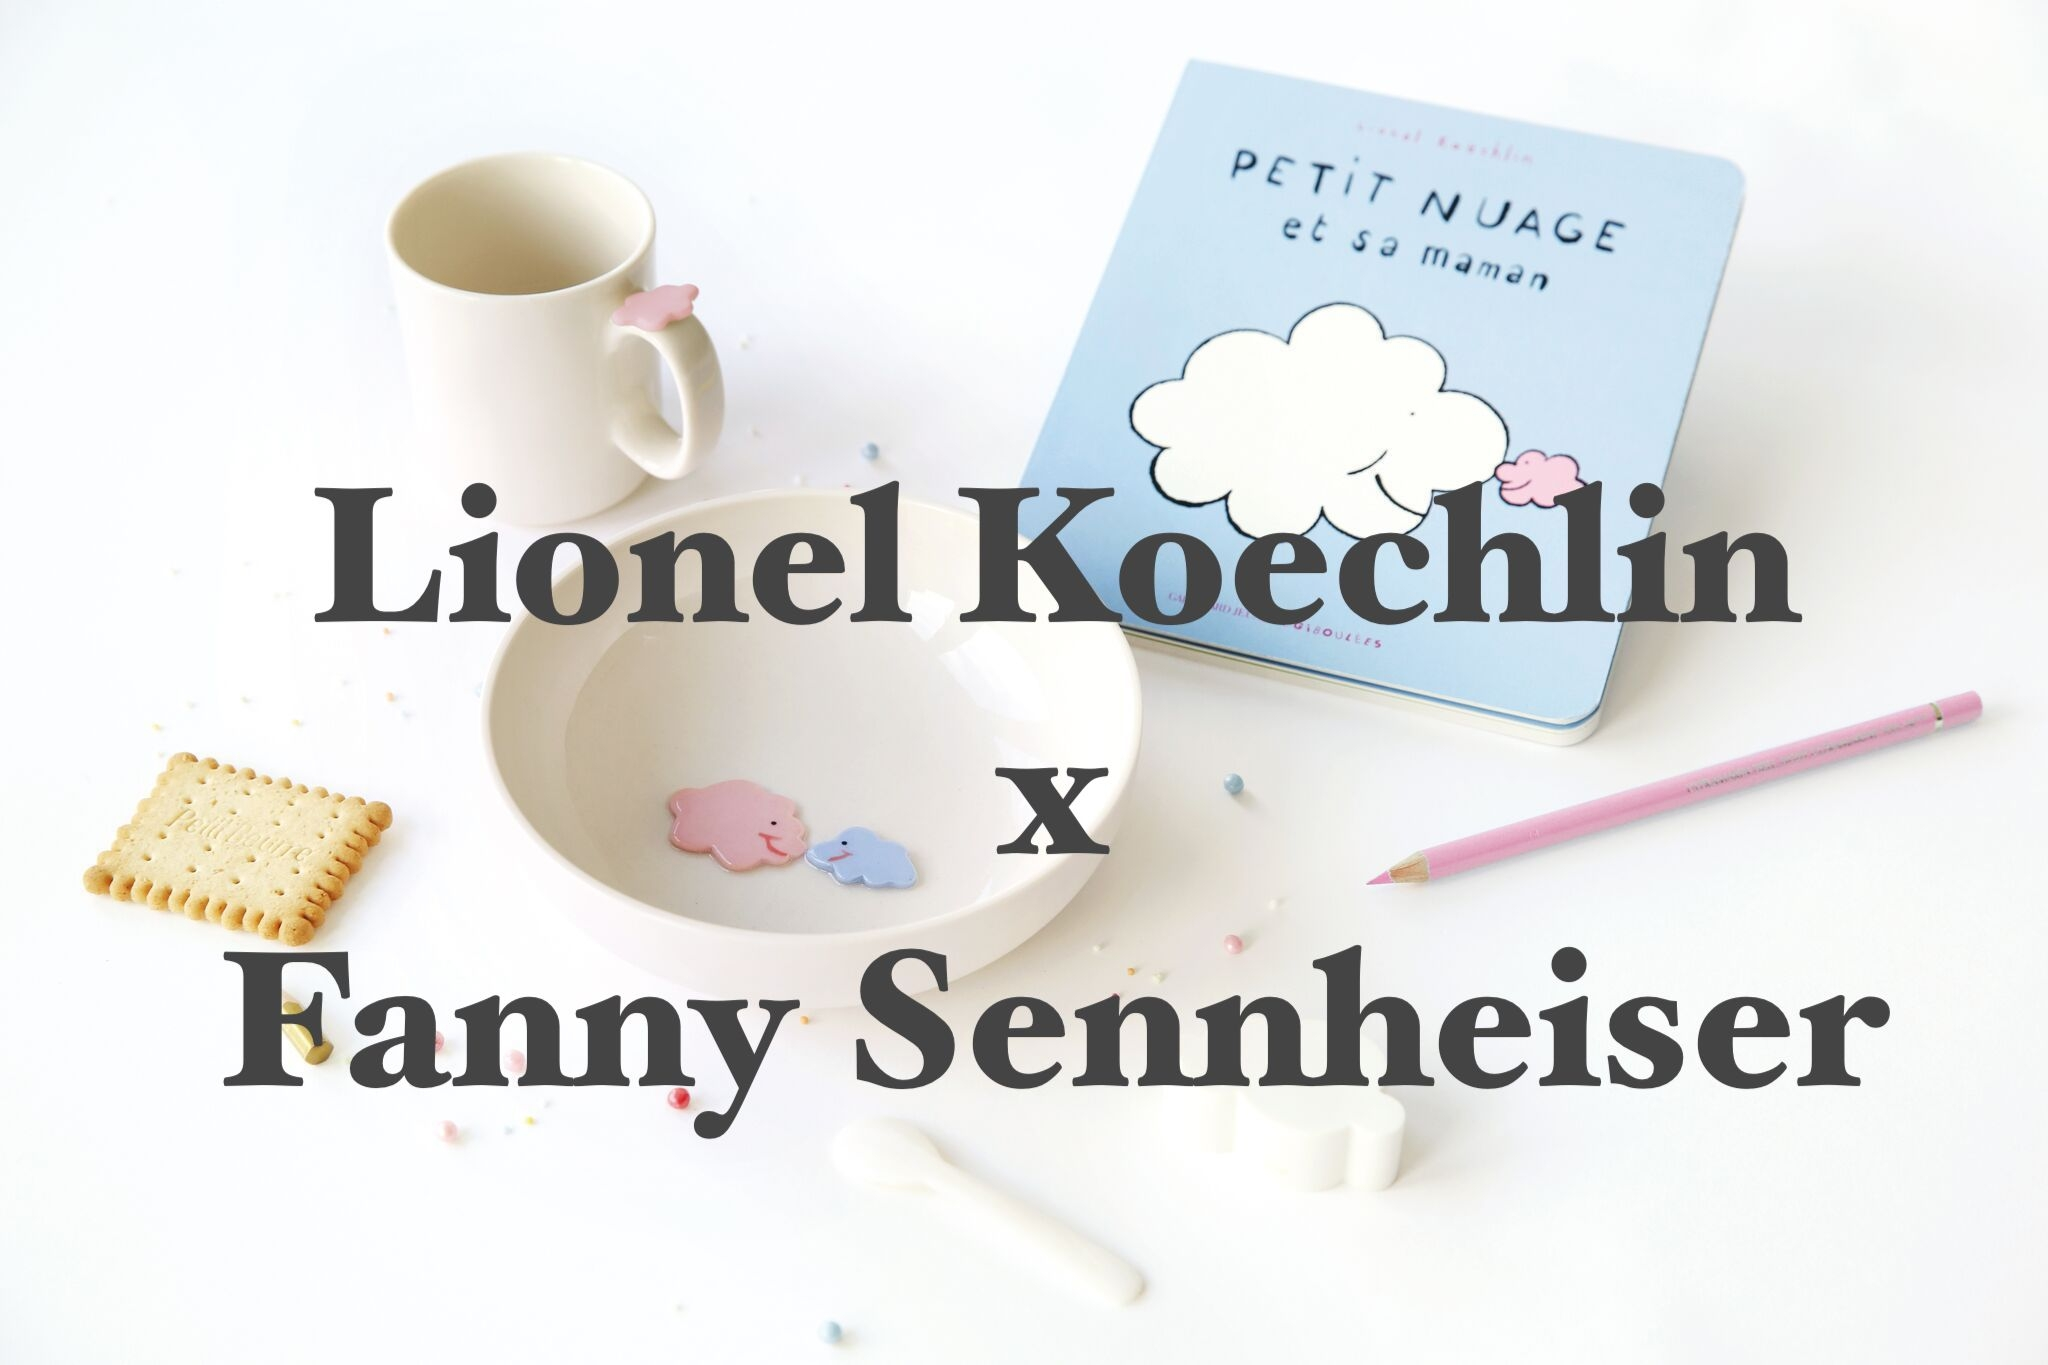 Lionel Koechlin limited edition